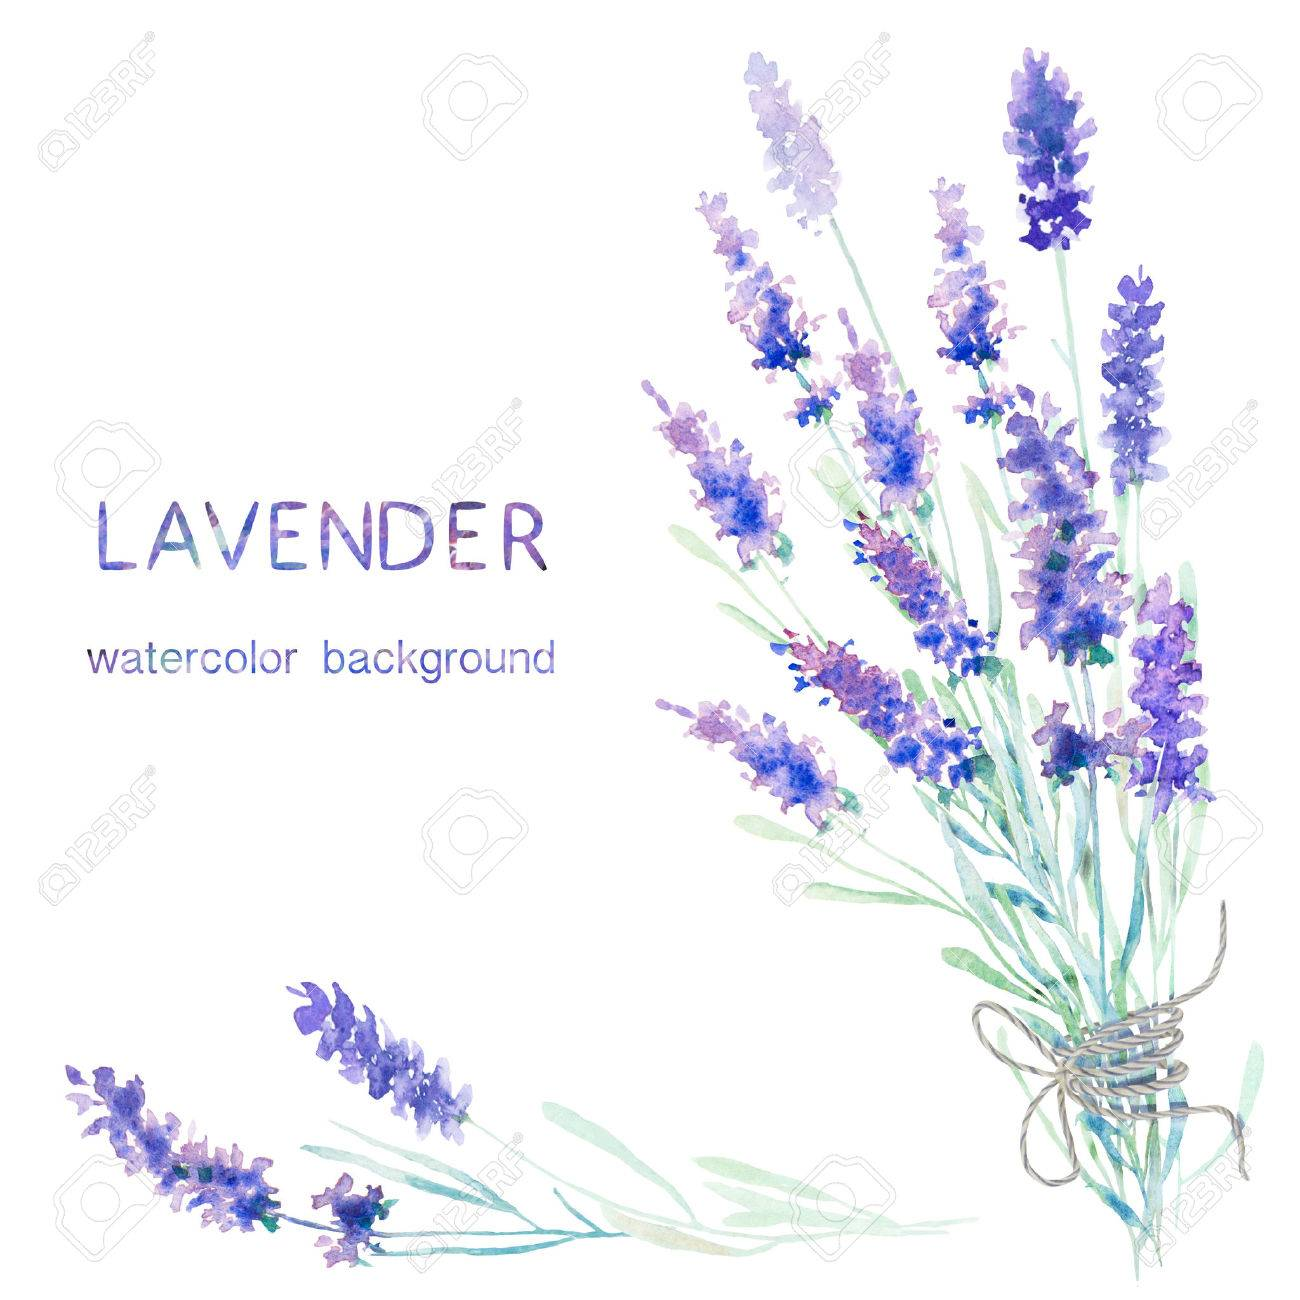 watercolor lavender background card greeting cards invitations